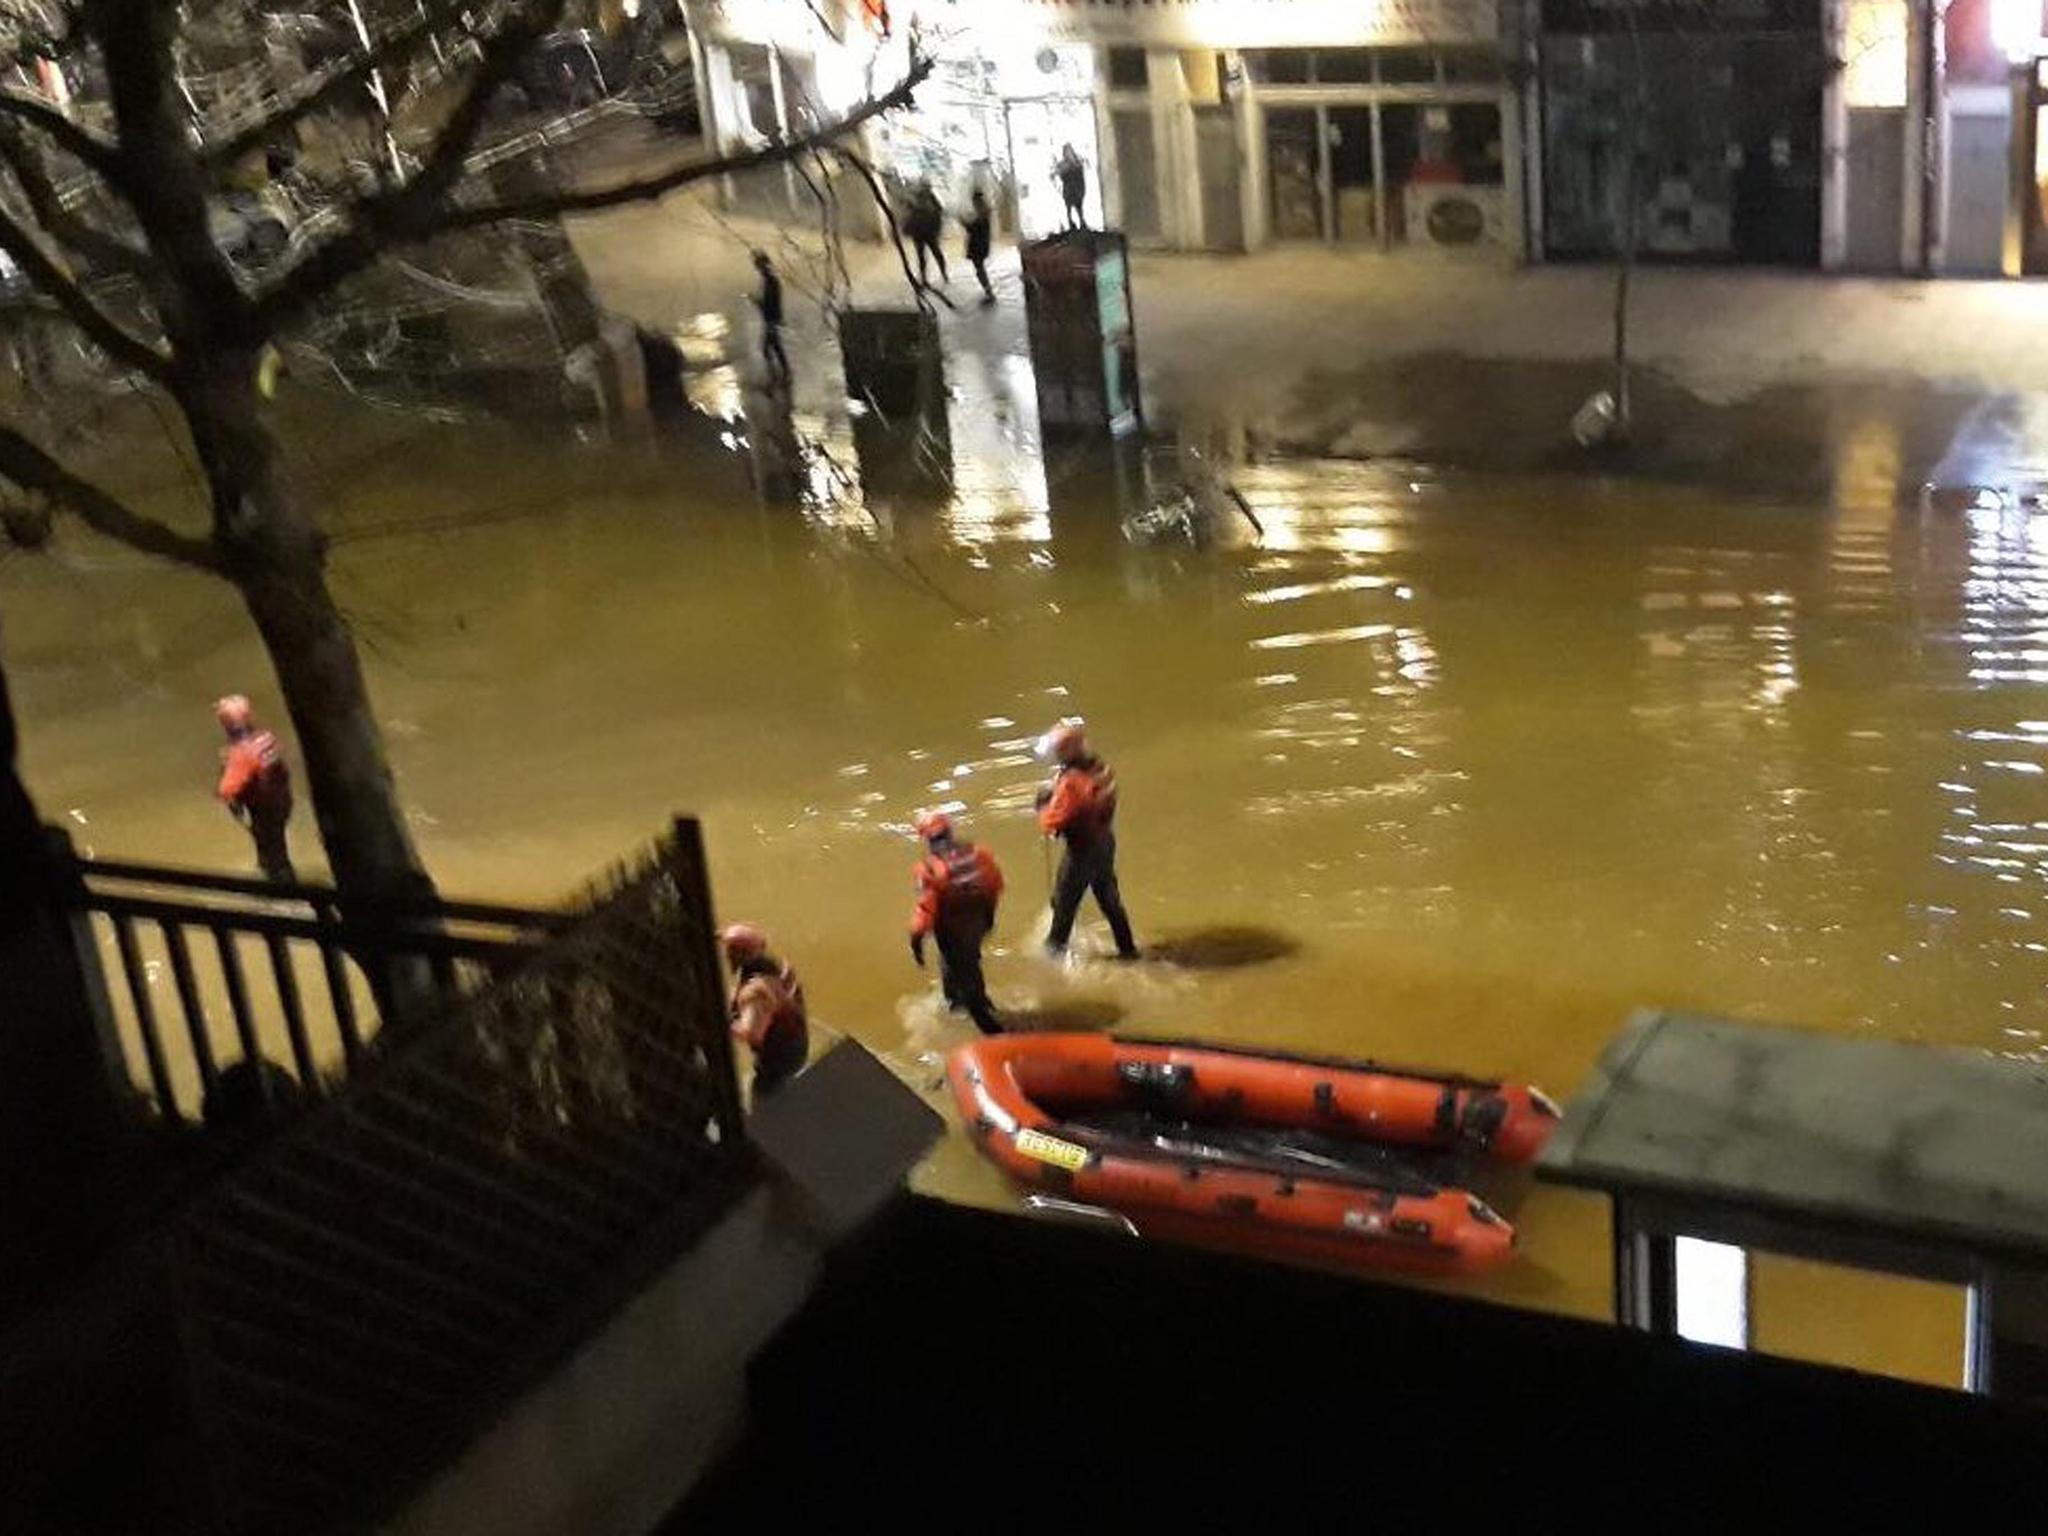 Hammersmith flood: Scores evacuated from streets as flash